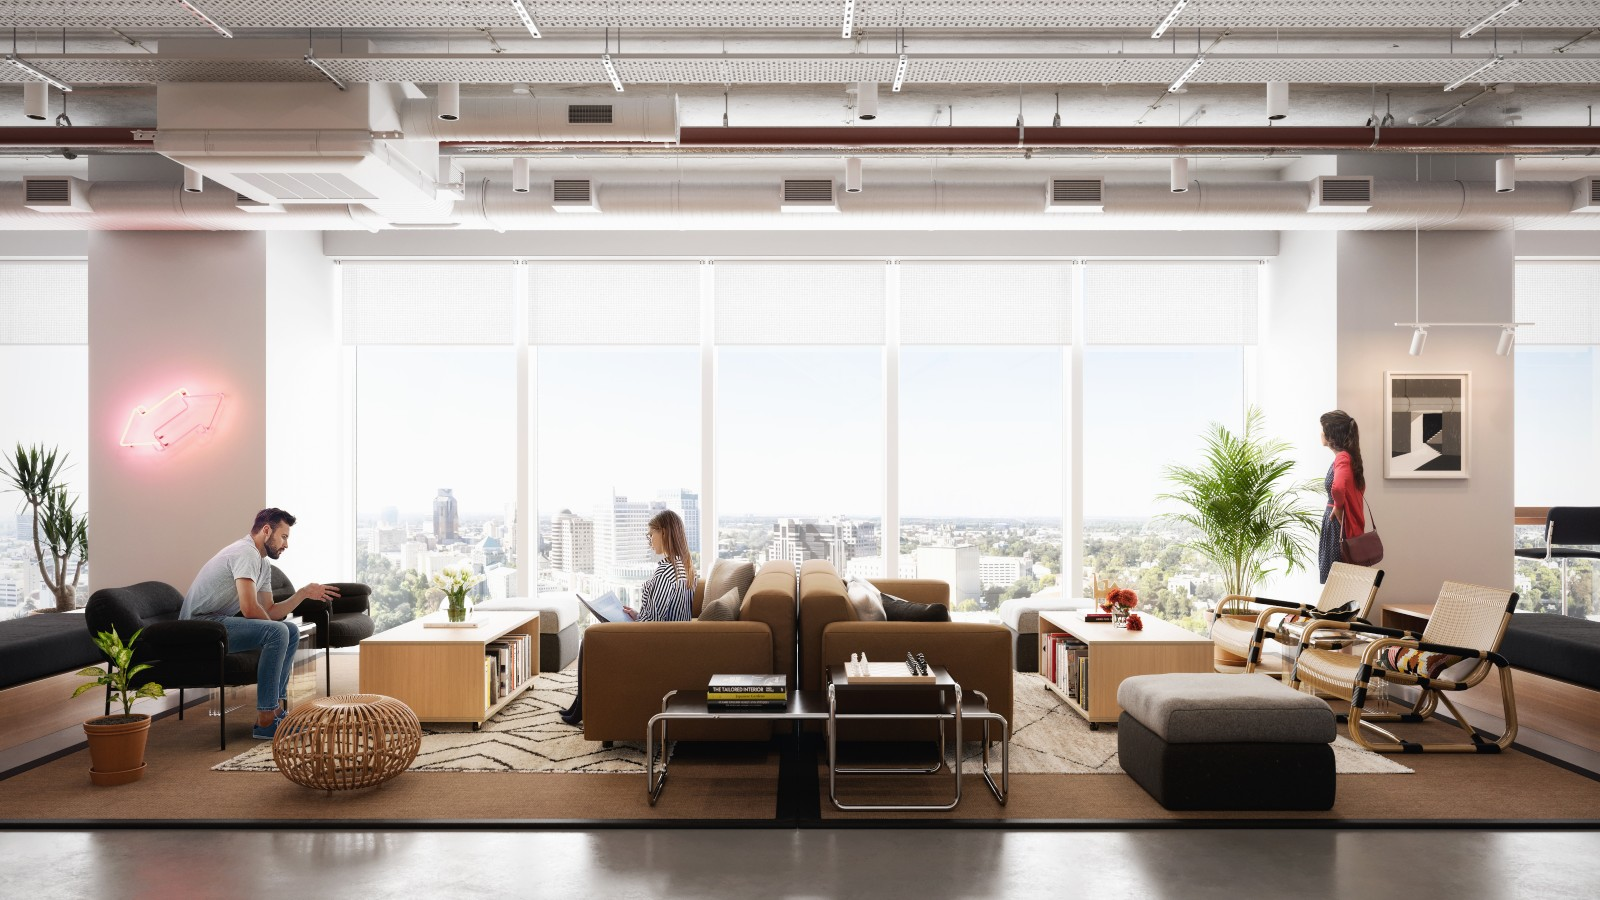 'Workspitality' Spaces On The Rise - Zenger News